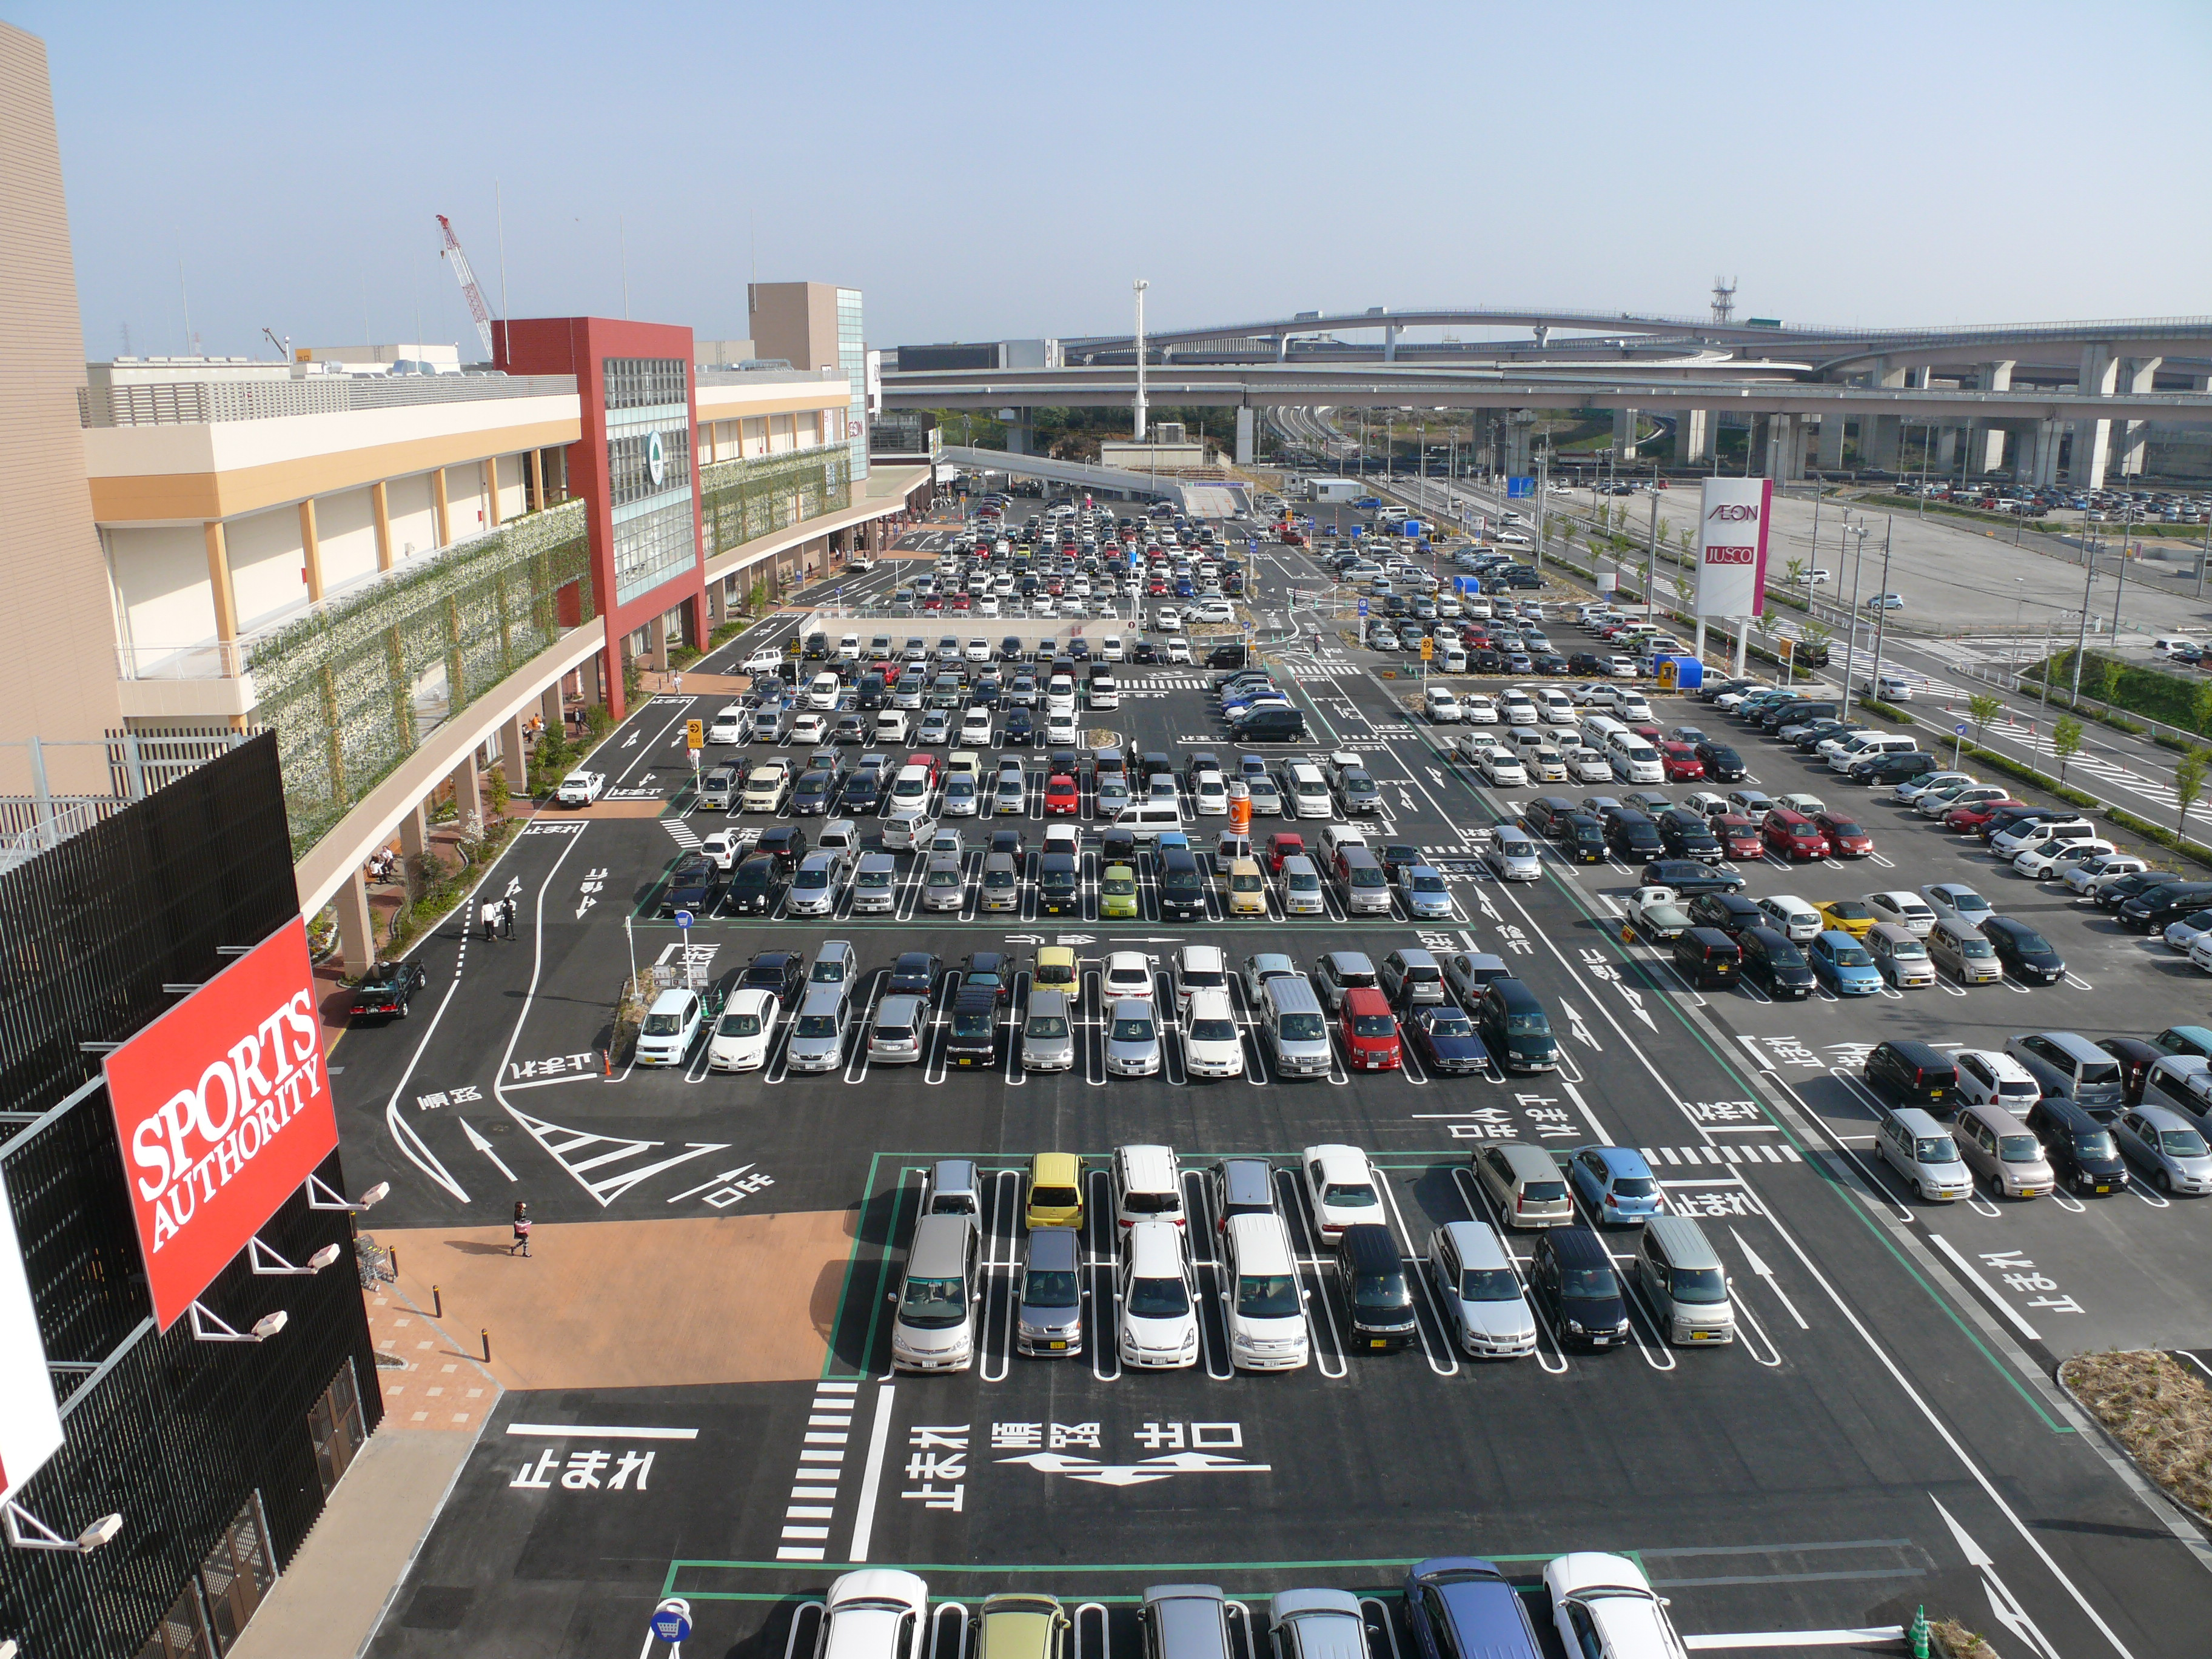 Parking User Groups